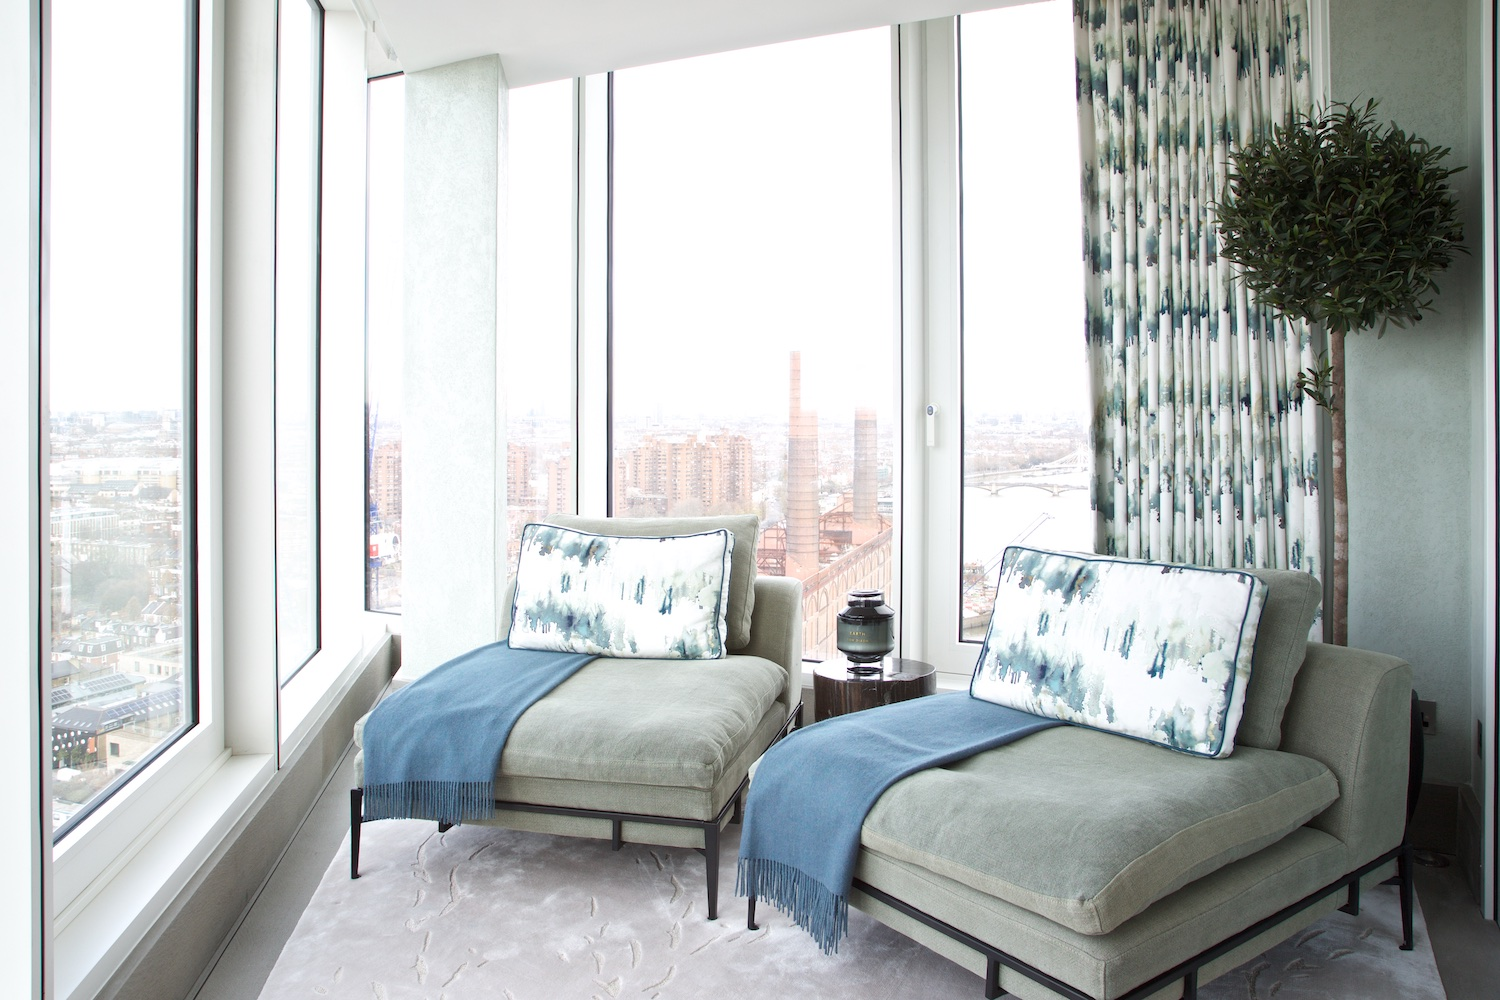 Design Box London - Interior Design - Chelsea Creek penthouse, SW6 - Chairs